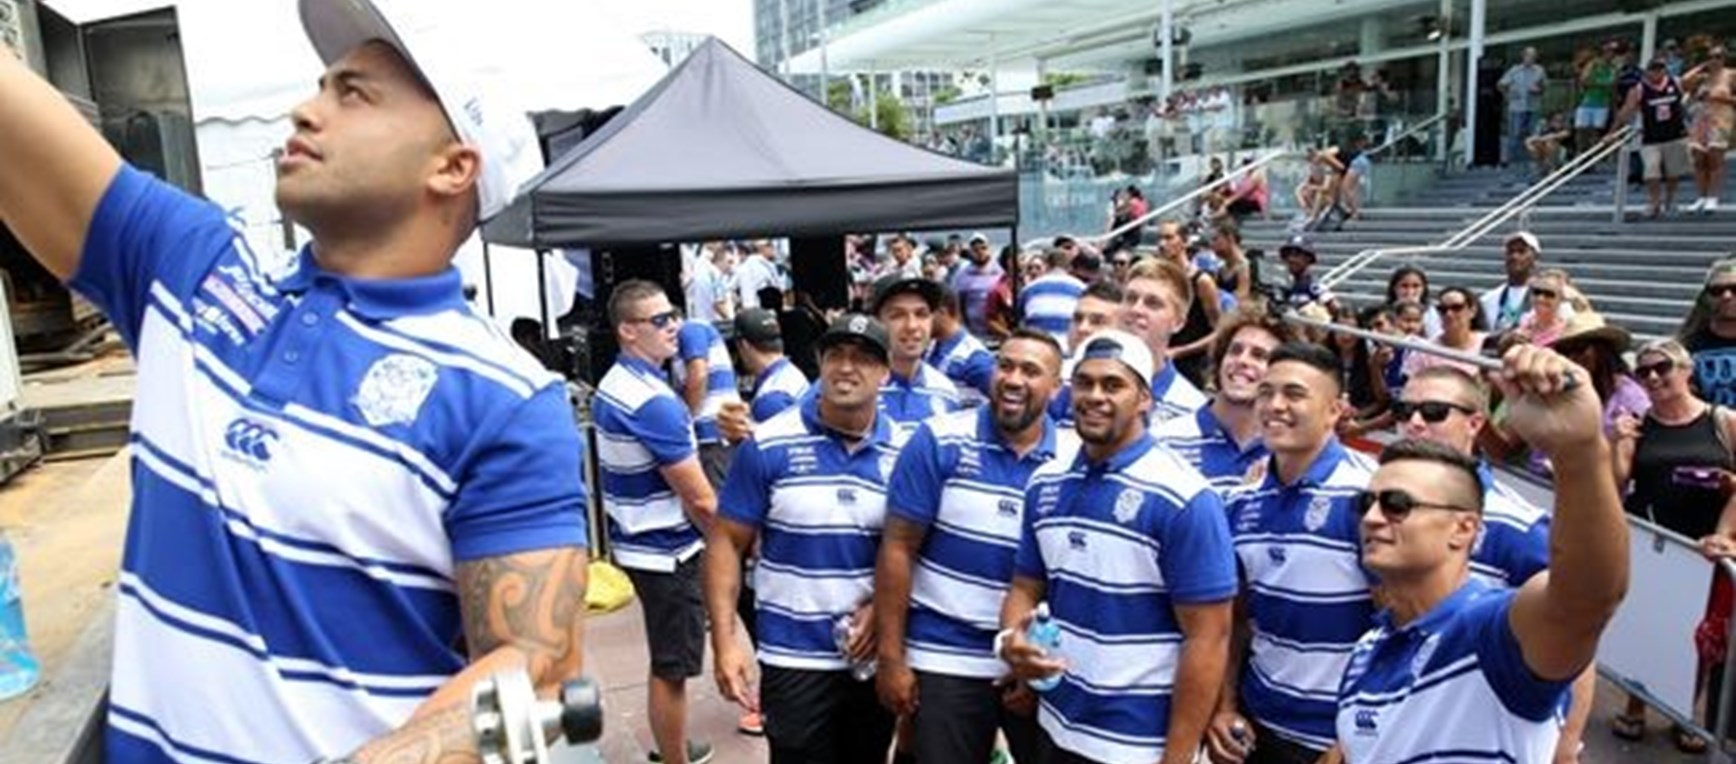 Auckland Nines Fan Day in Pics